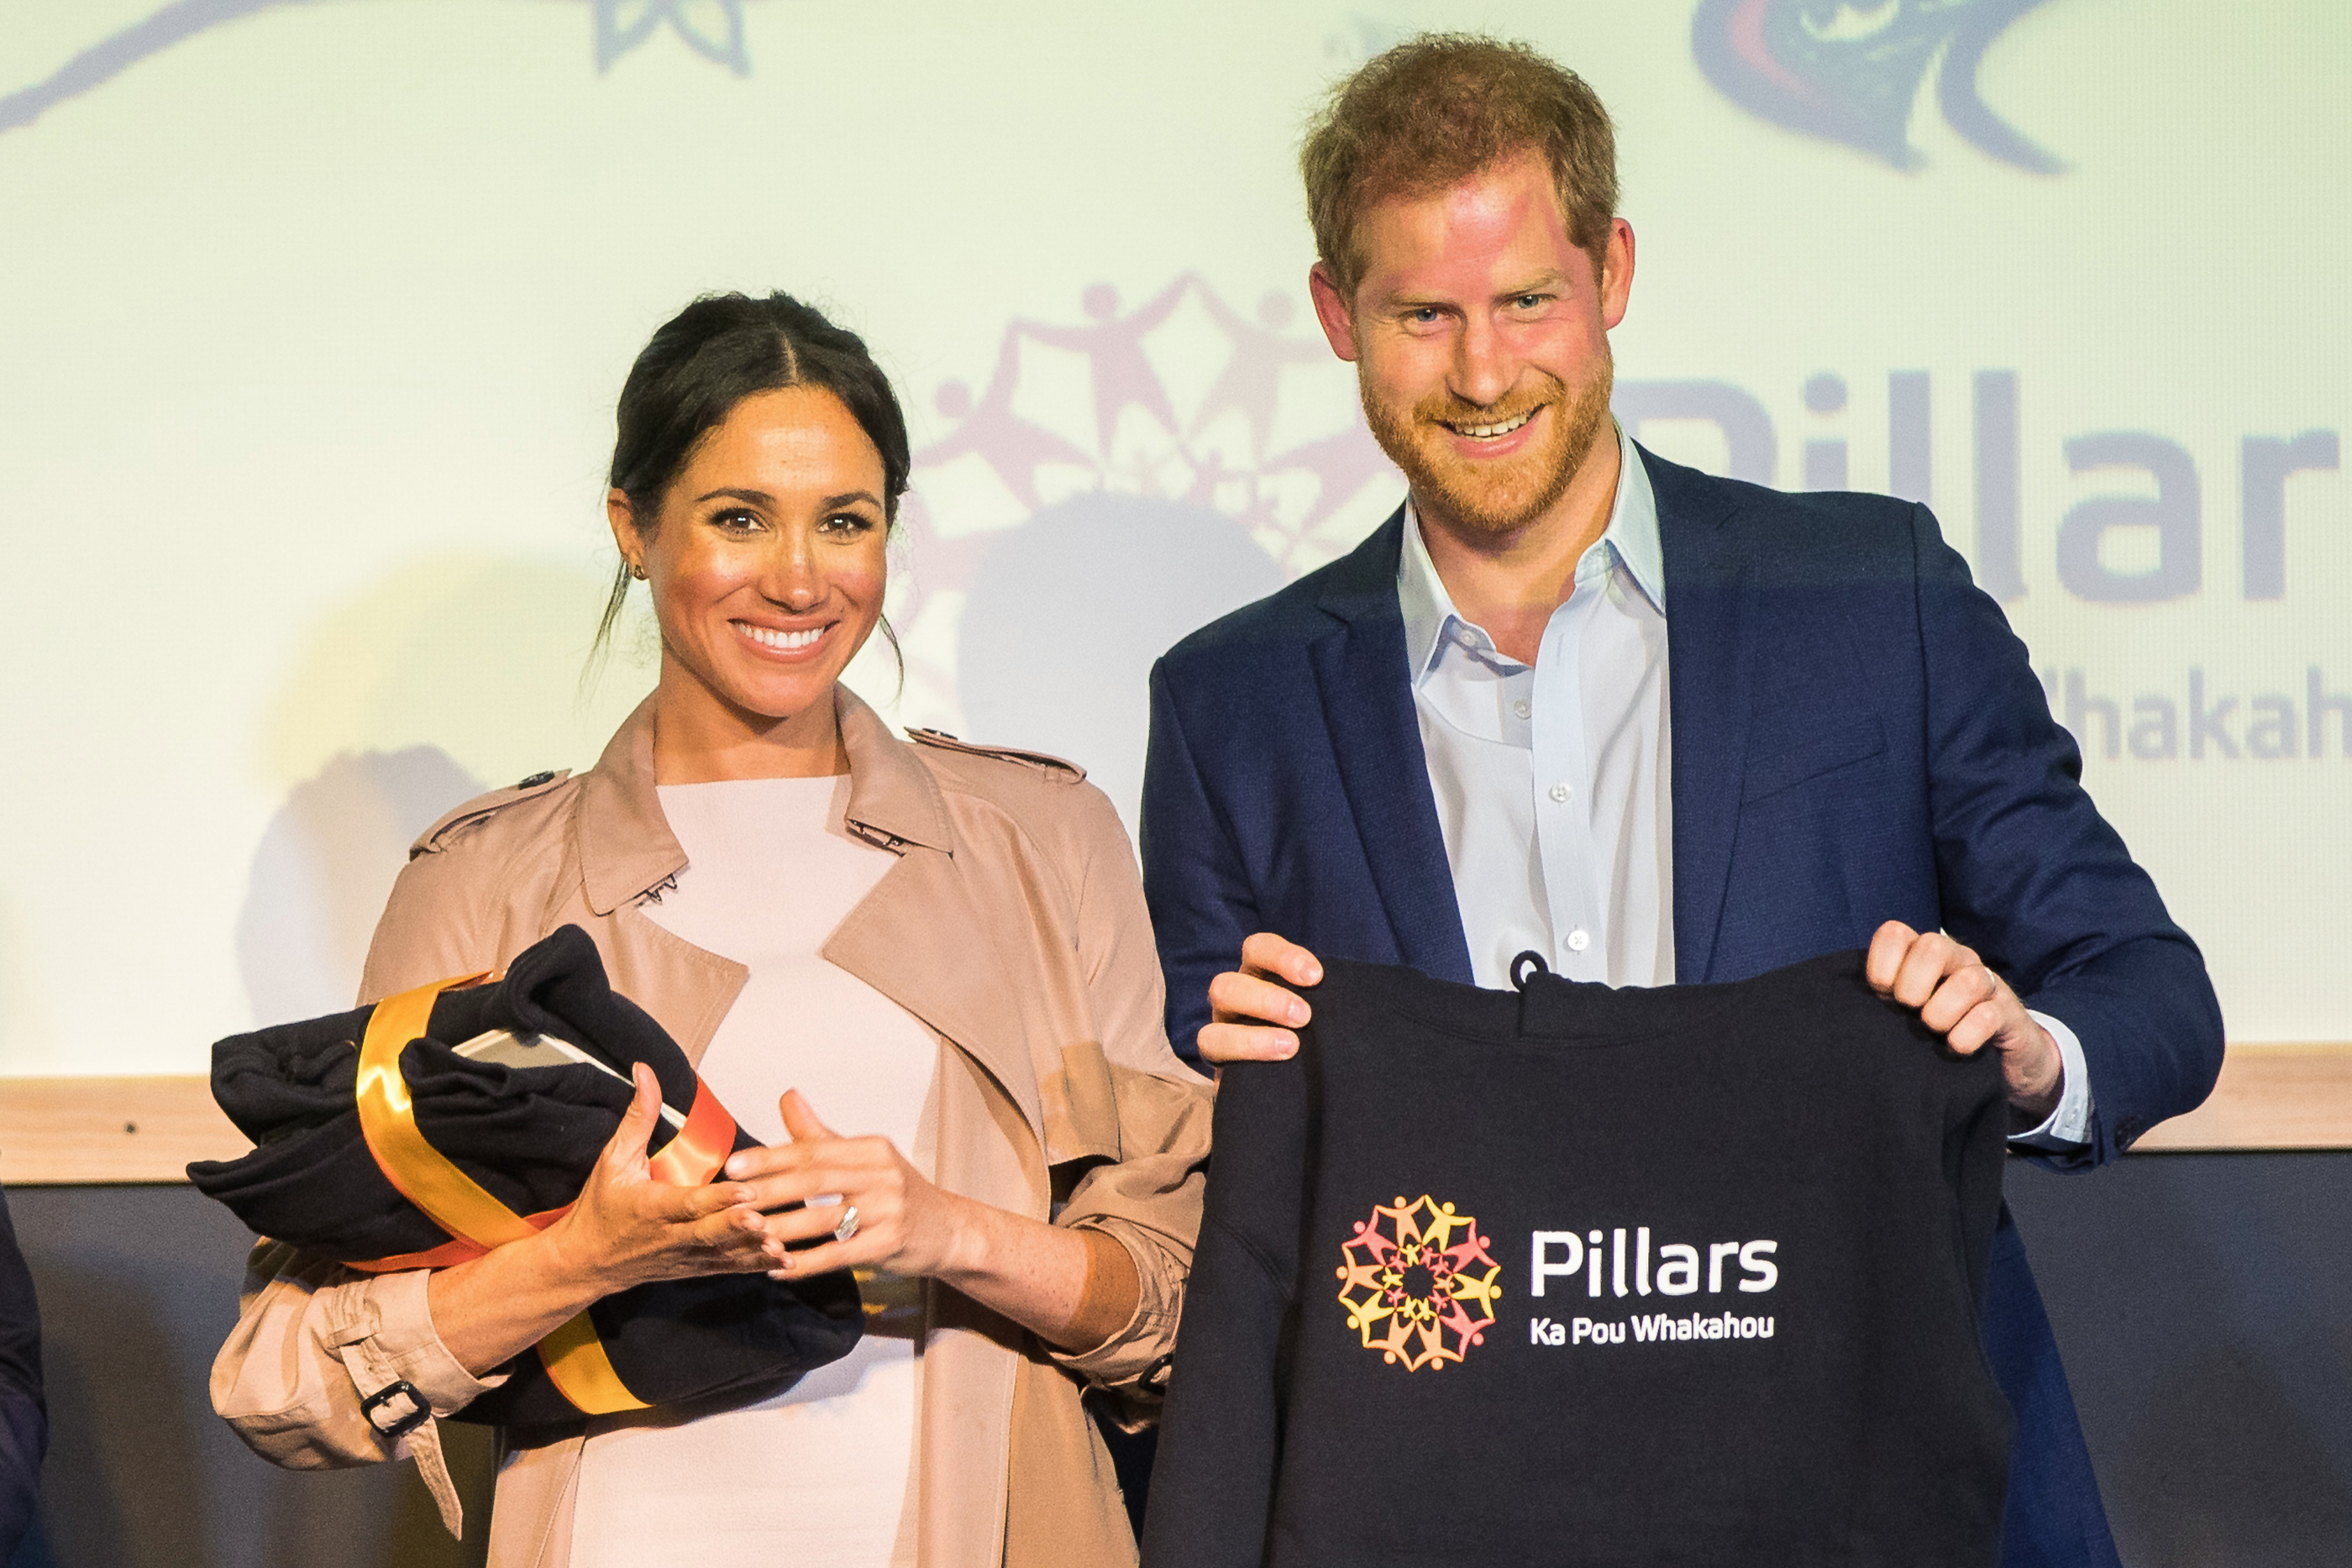 Prince Harry wants 'healthy' social media in wake of U.S. Capitol attack, Markle scrutiny